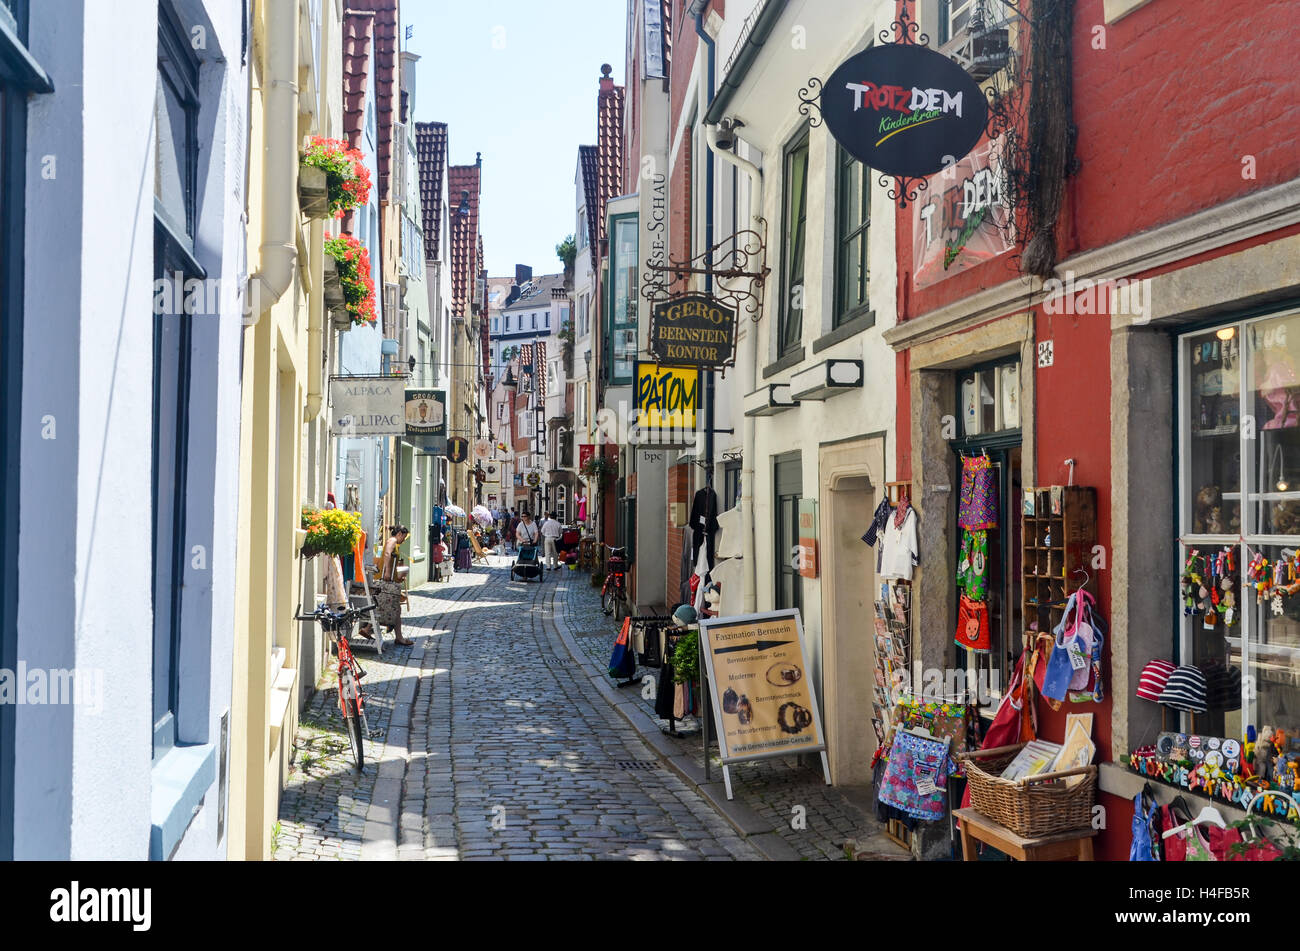 shops in a narrow street of bremen historical centre stock photo 123269267 alamy. Black Bedroom Furniture Sets. Home Design Ideas